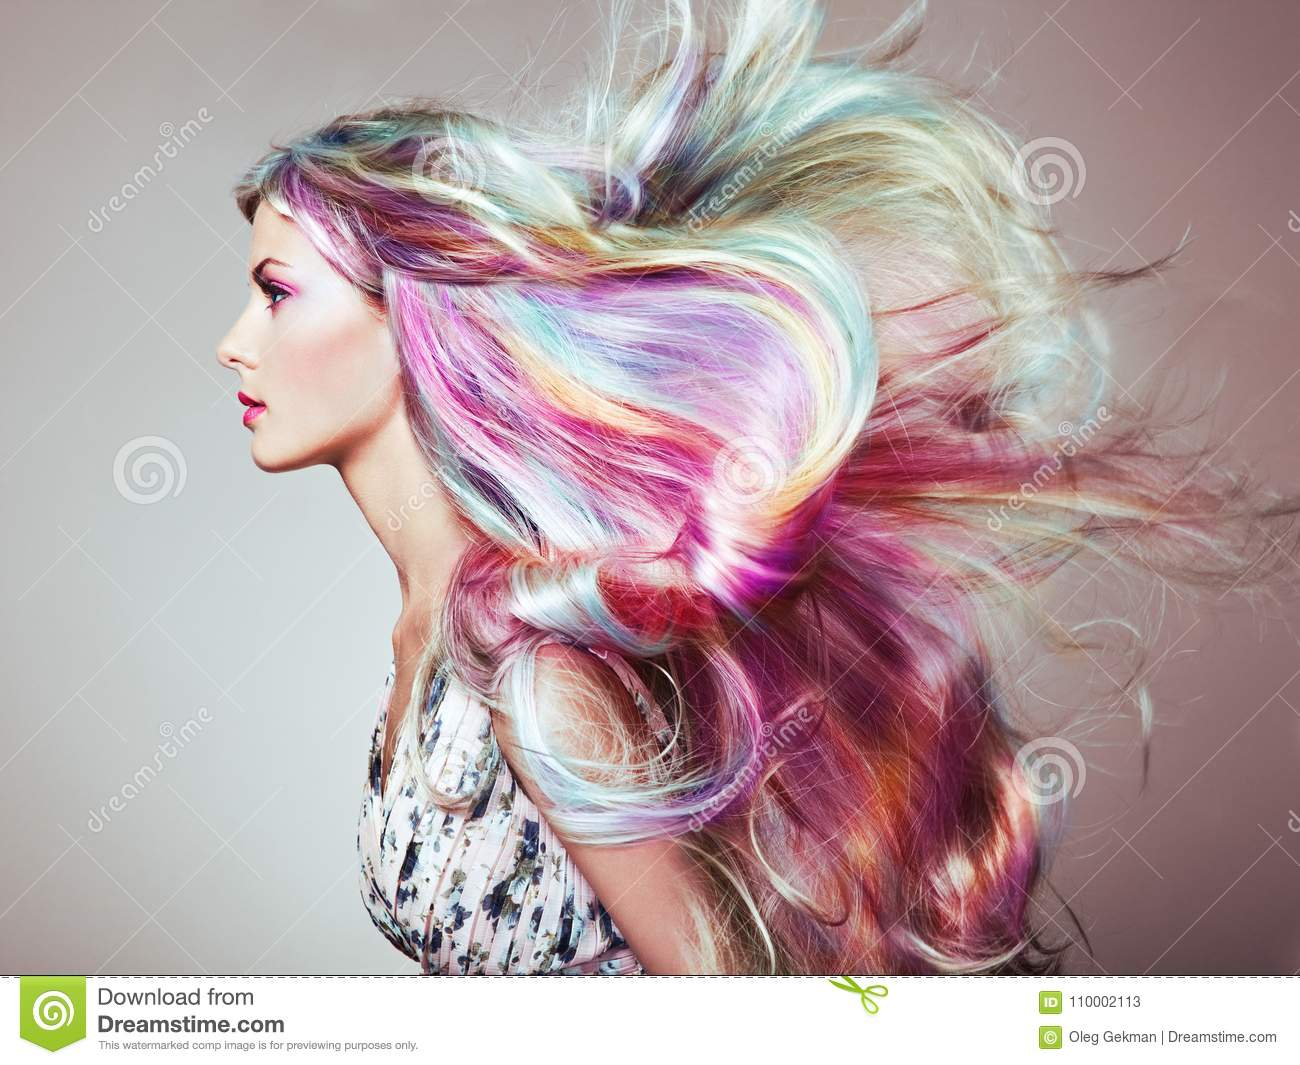 Download Beauty Fashion Model Girl With Colorful Dyed Hair Stock Image - Image of expression, care: 110002113